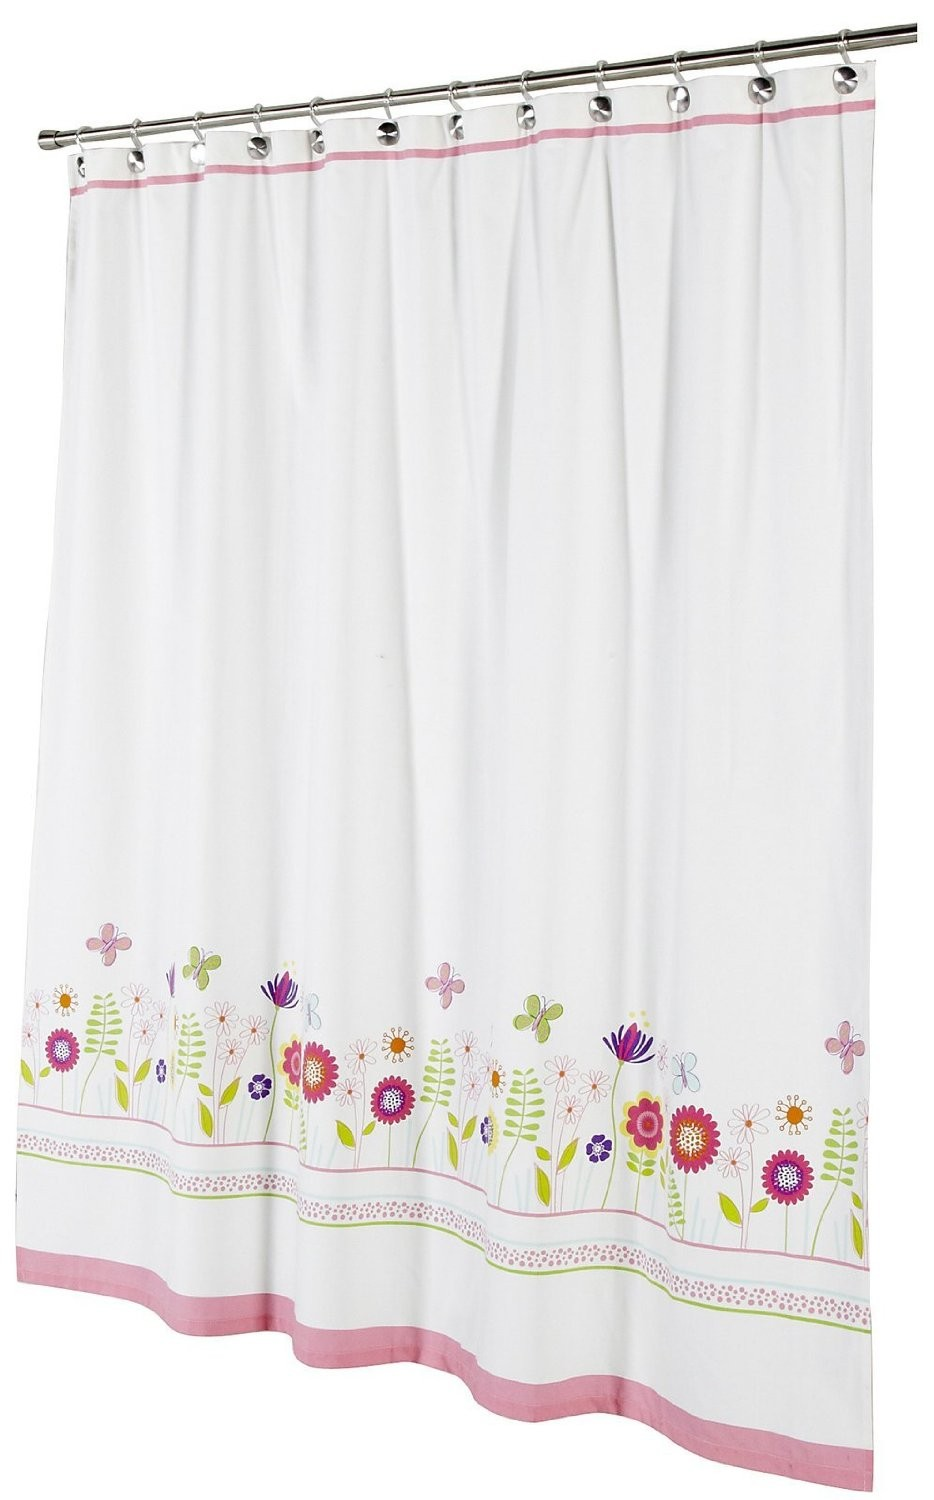 Kassatex Garden Party Shower Curtain